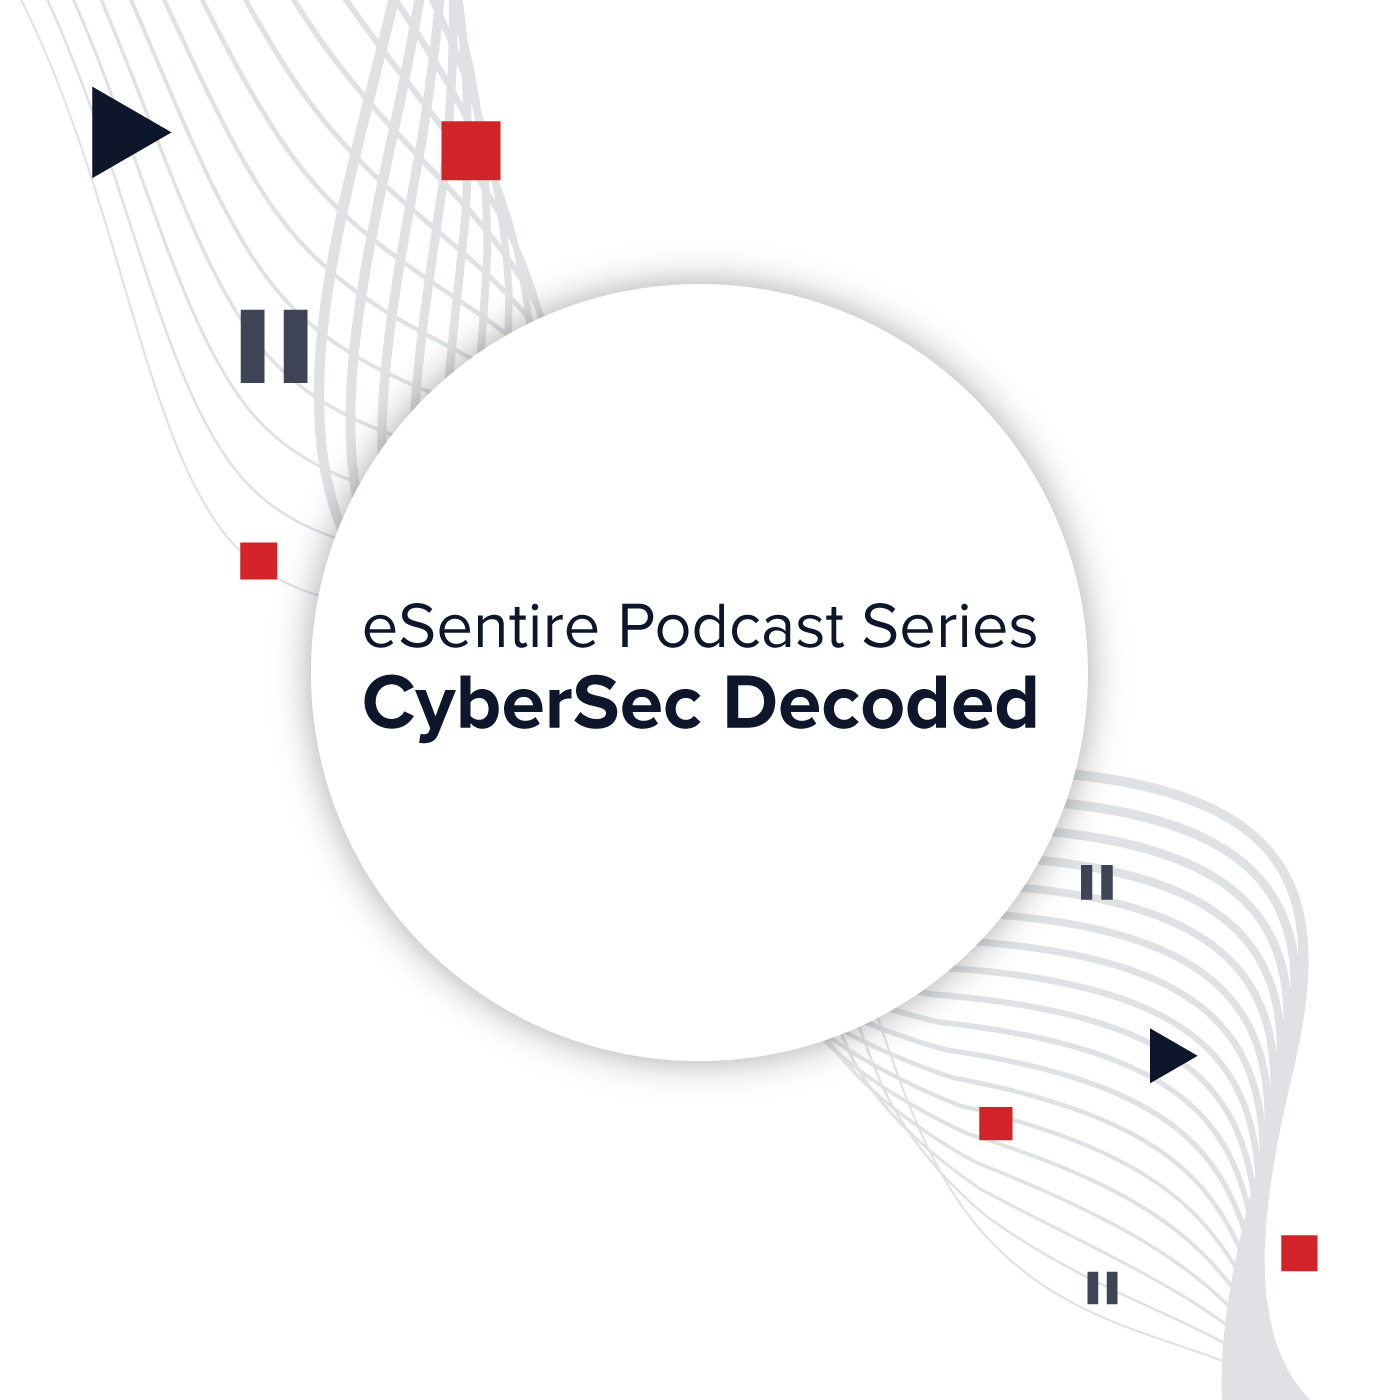 Season 3 - Episode 17: Cybersecurity Claims in 2020: Going Beyond Making Your Business Whole